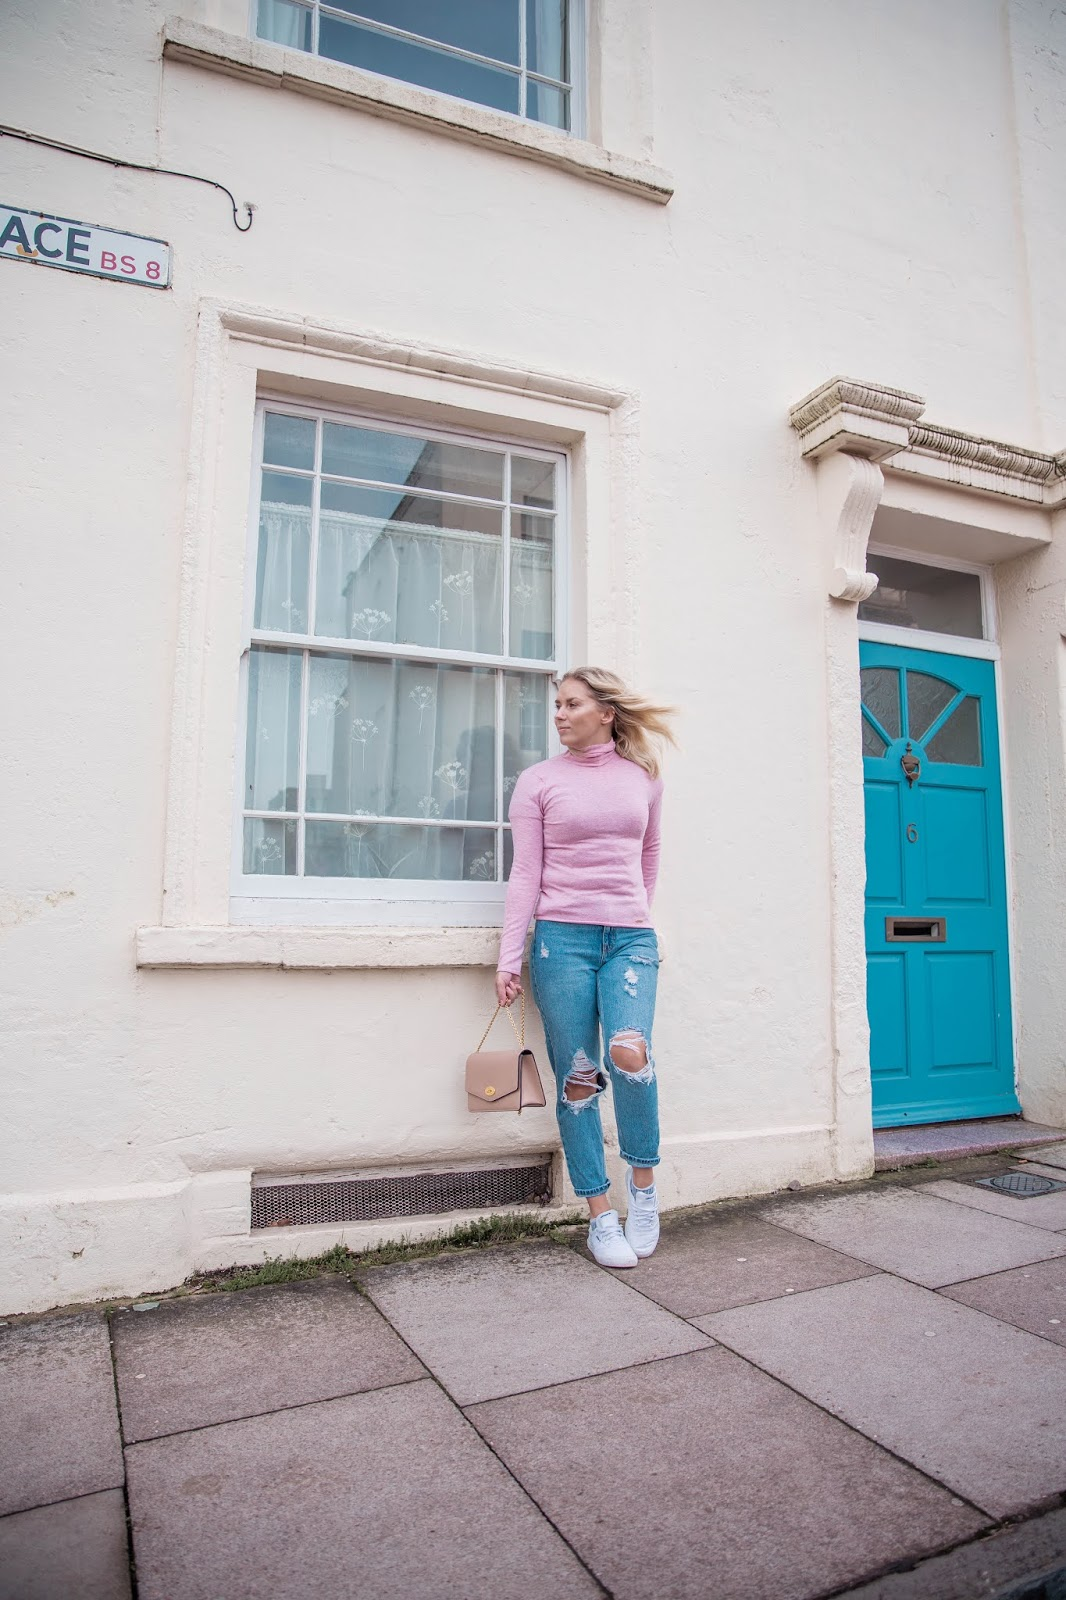 Rachel Emily in a pink top and jeans outside a cream house with a blue door